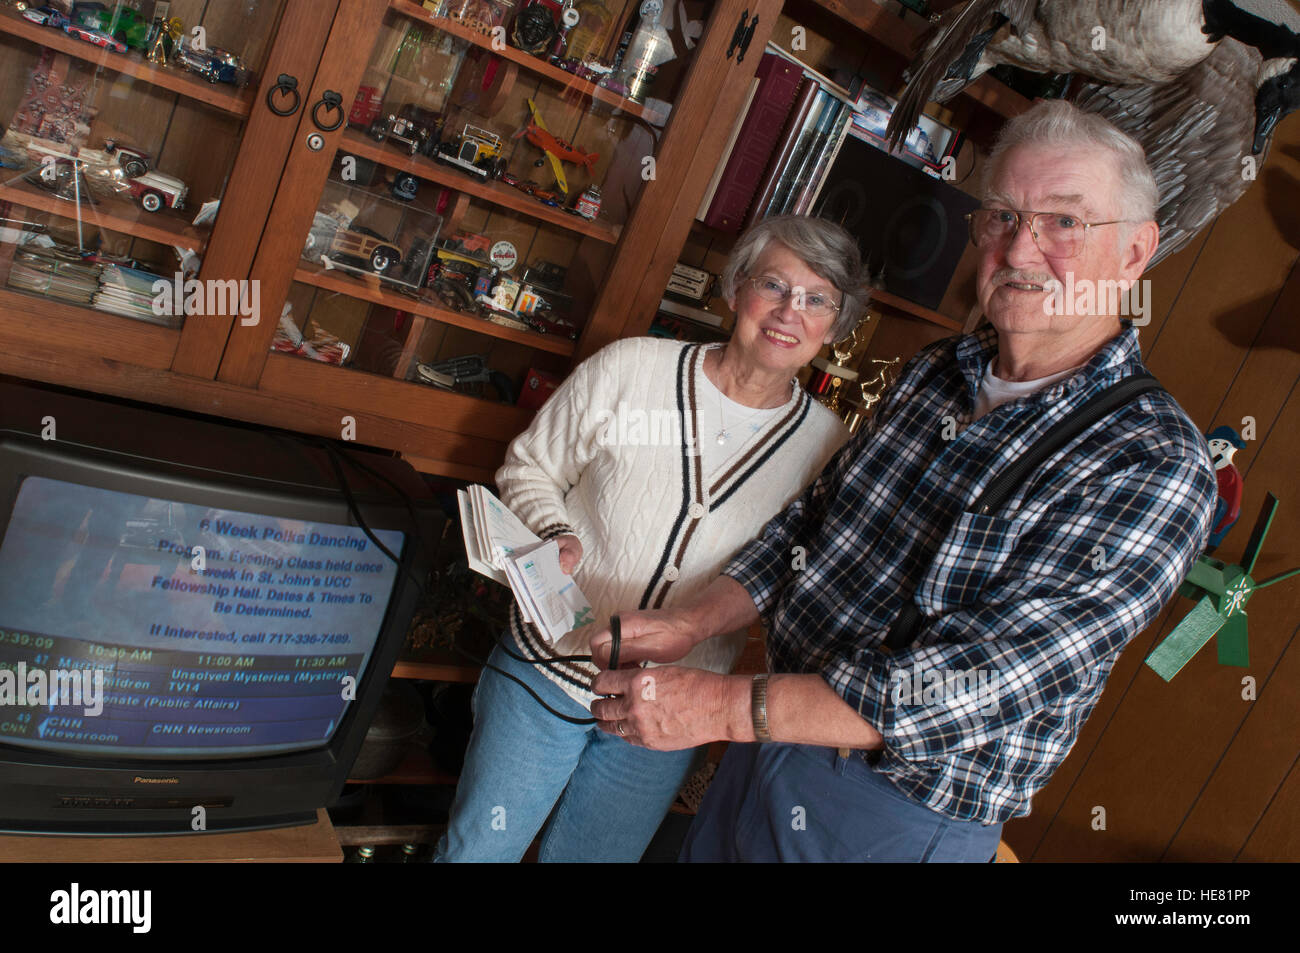 Couple frustrated with exorbitant cable tv bills - Stock Image